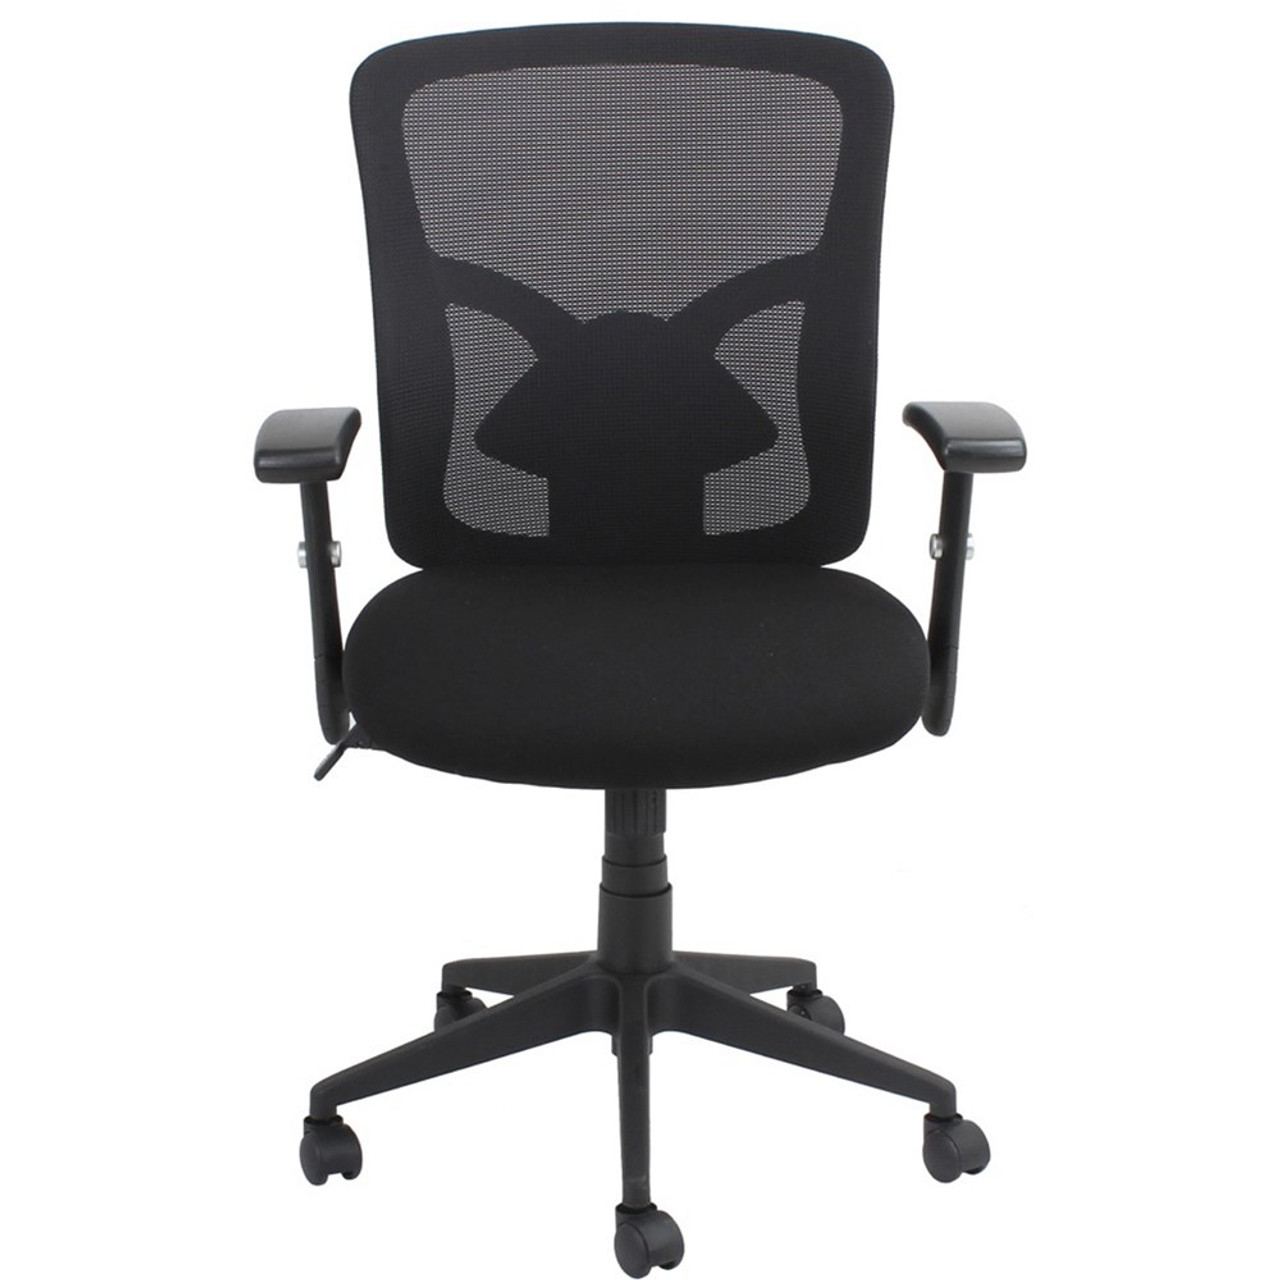 Fluent Mesh Back Office Chair Black Fabric Seat Synchron Adjustable Arms Back Height